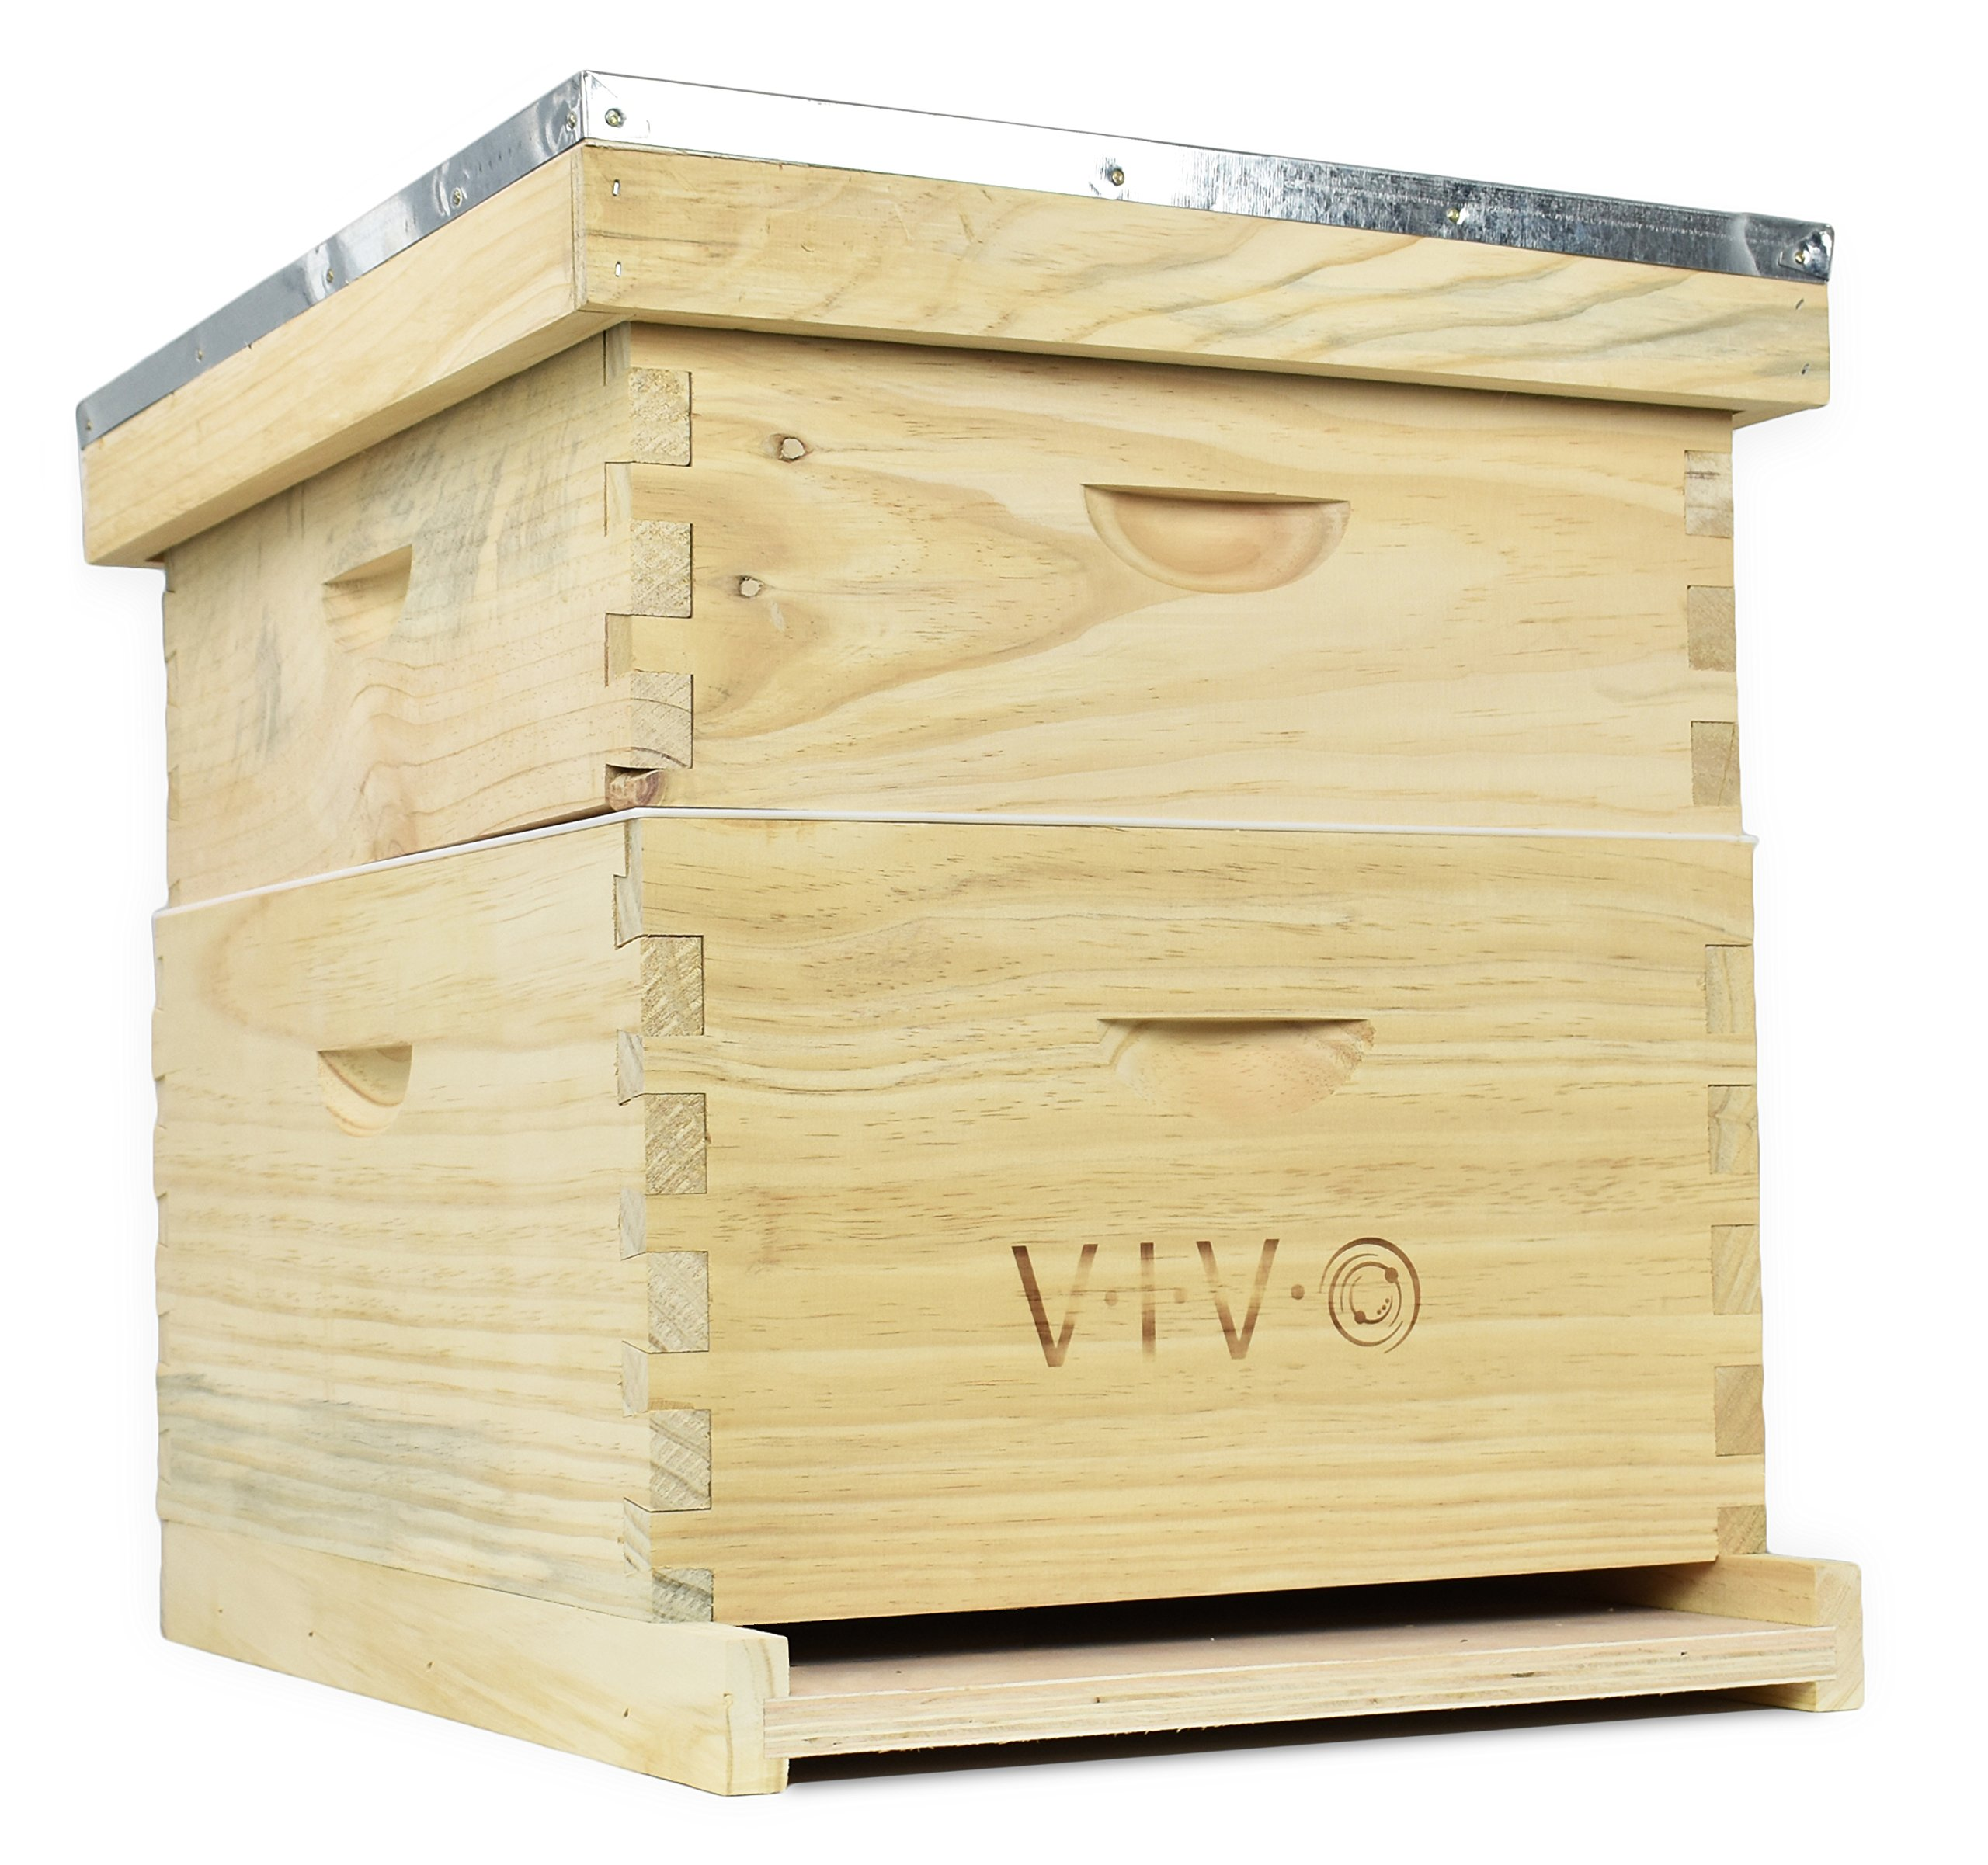 Complete Beekeeping 20 Frame Beehive Box Kit (10 medium 10 Deep) Langstroth Bee Hive from VIVO (BEE-HV01) by VIVO